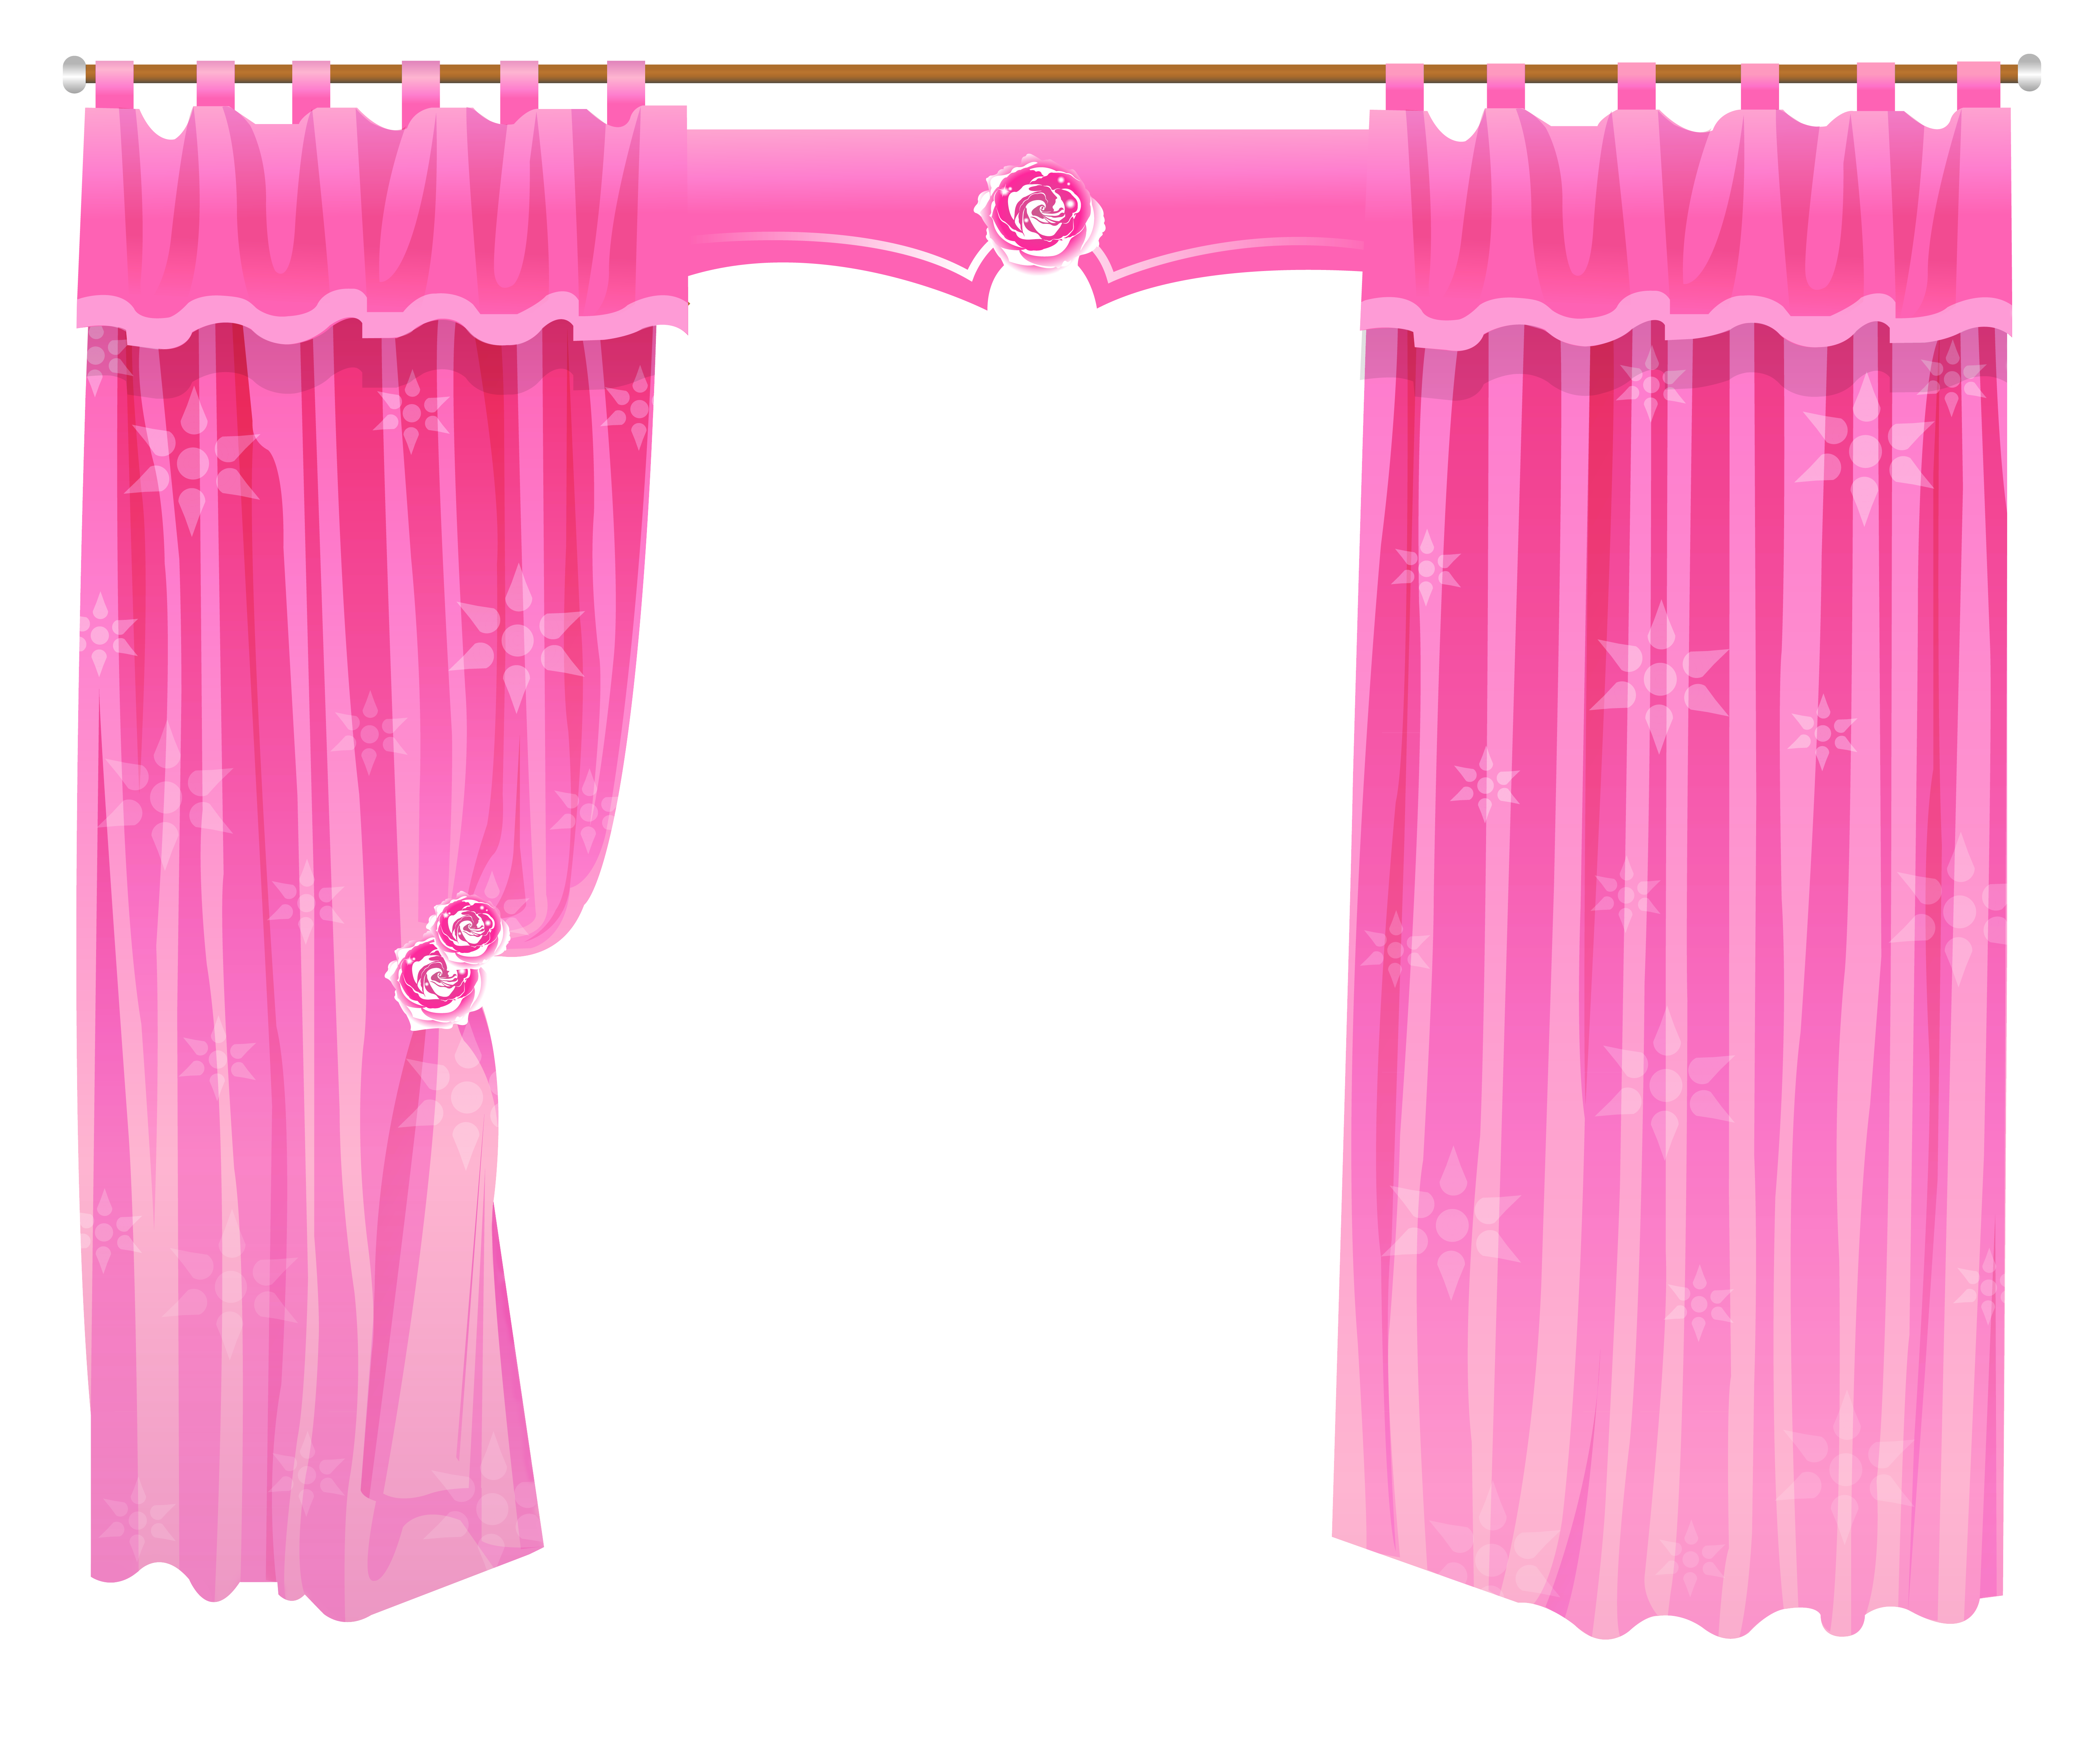 Curtain cliparts pink. Curtains clipart flower